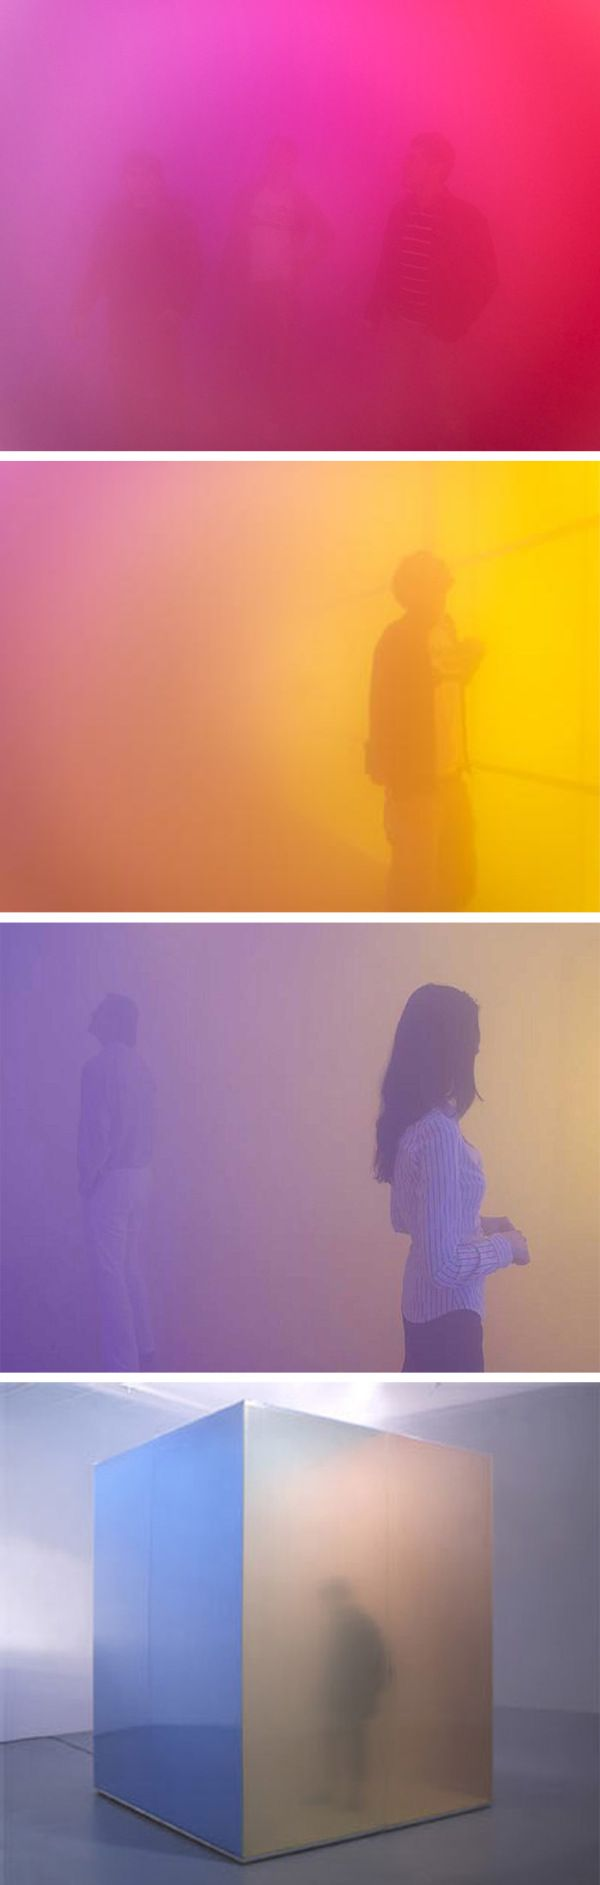 Ann Veronica Janssens #Perception CLLC. color, spectrum, fog, gradient, installation, art, cube